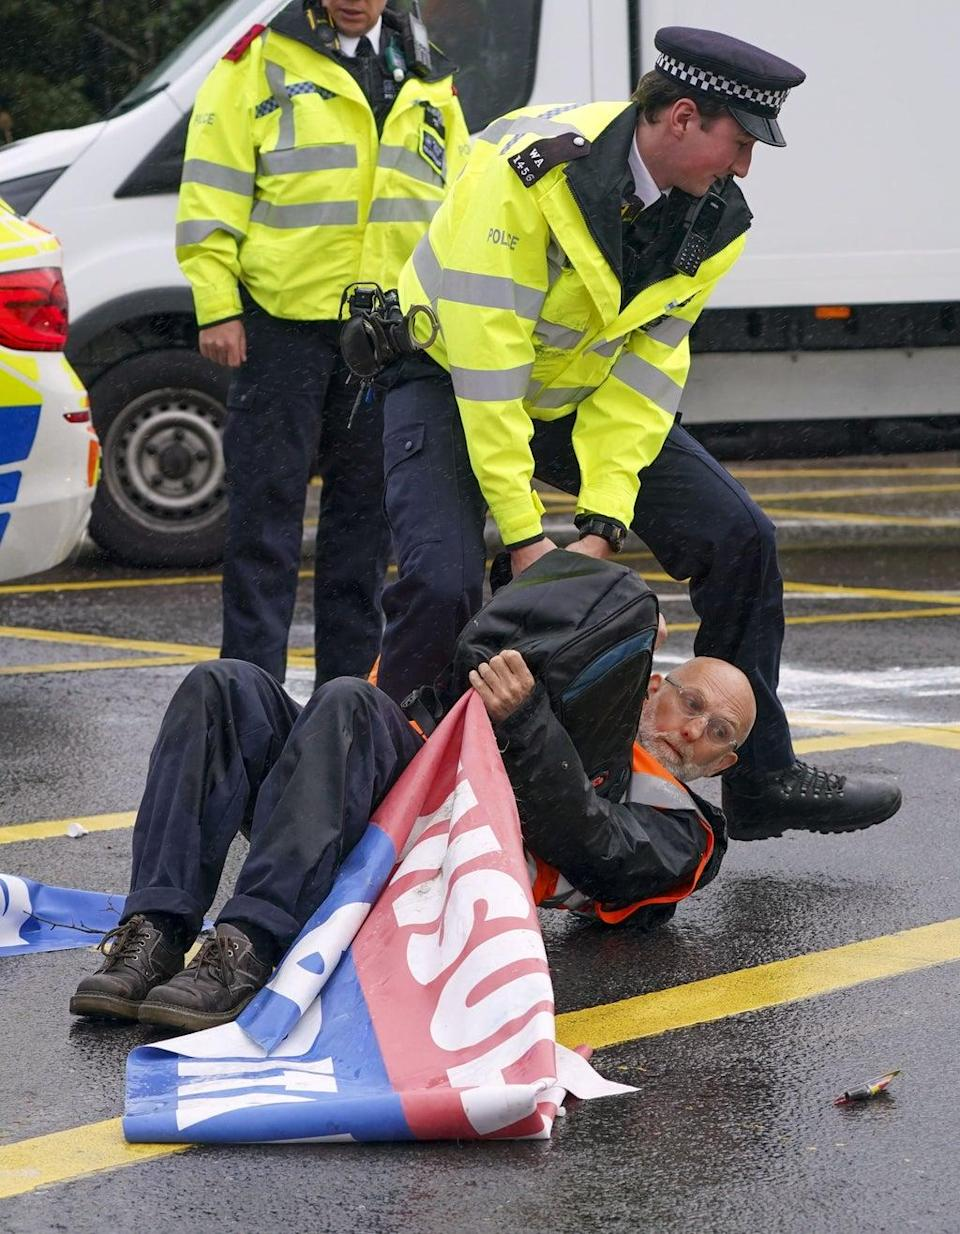 Police officers detain a protester from Insulate Britain occupying a roundabout leading from the M25 motorway to Heathrow (Steve Parsons/PA) (PA Wire)